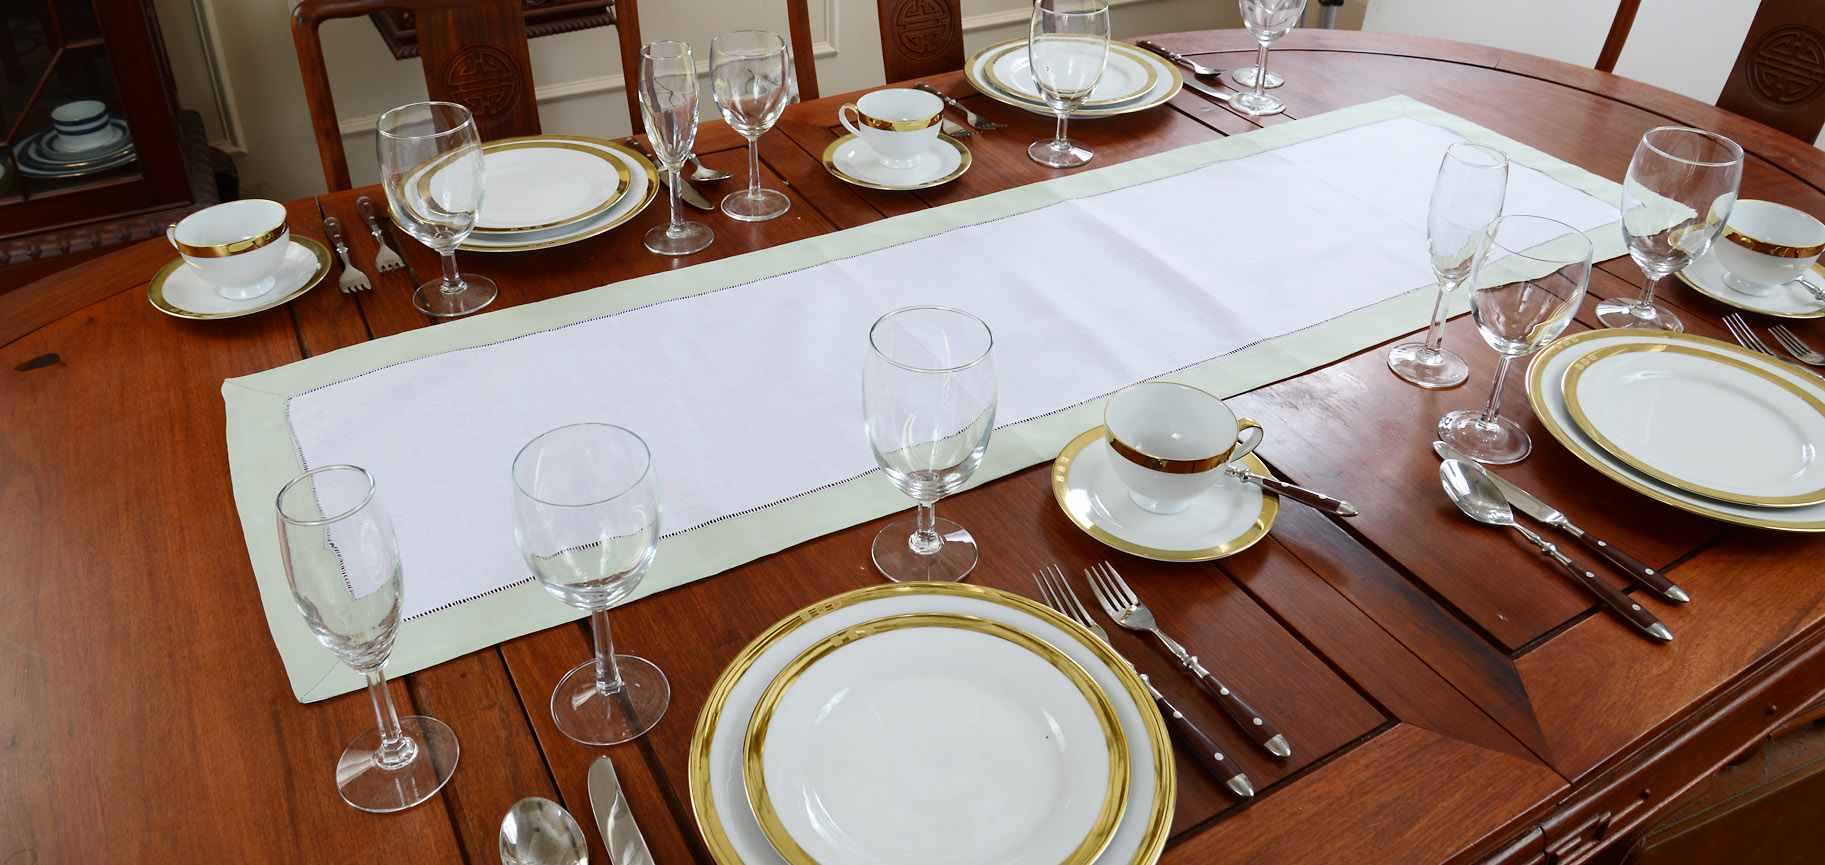 Festive table runner, white with winter pear color